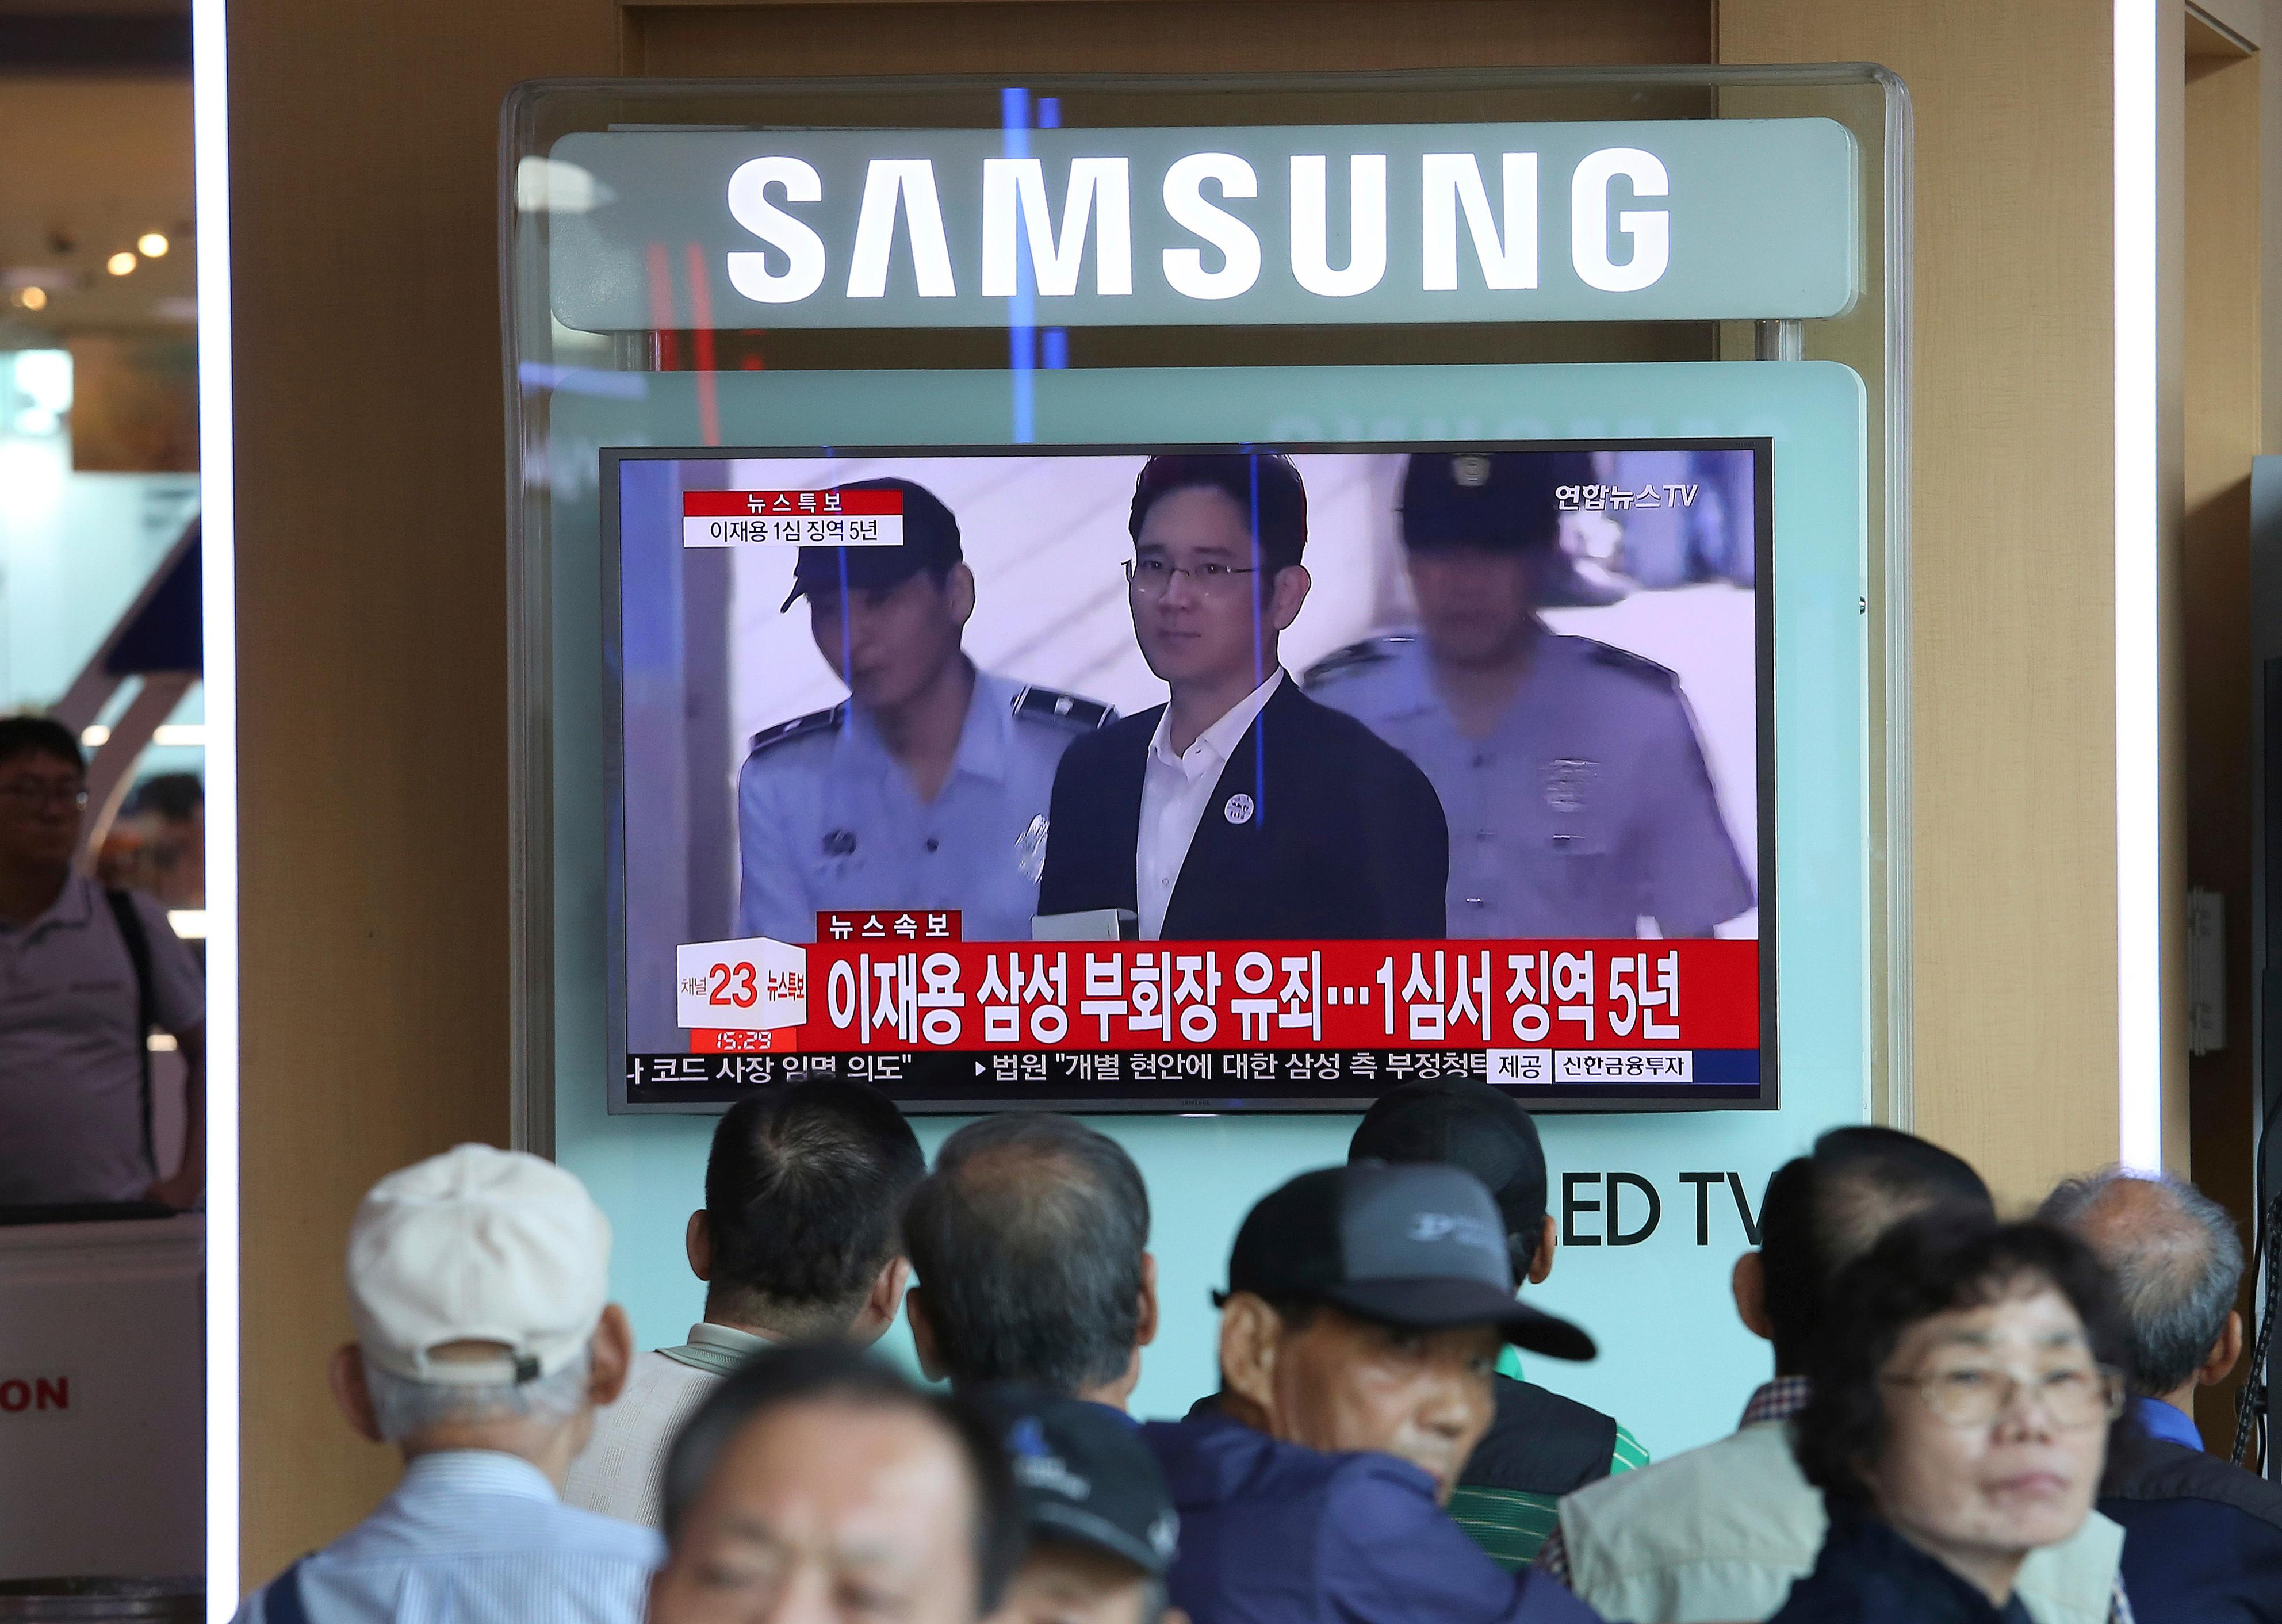 "People watch a TV screen showing Samsung Electronics Co. Vice Chairman Lee Jae-yong's arrival for his trail at the Seoul Central District Court, at the Seoul Railway Station in Seoul, South Korea, Friday, Aug. 25, 2017. The court has sentenced the billionaire Samsung heir to five years in prison for bribery and other crimes that fed public anger leading to the ouster of Park Geun-hye as South Korea's president. The Korean letters read: ""Court sentenced Samsung Electronics Vice Chairman Lee Jae-yong to five years in prison."" (AP Photo/Ahn Young-joon)"